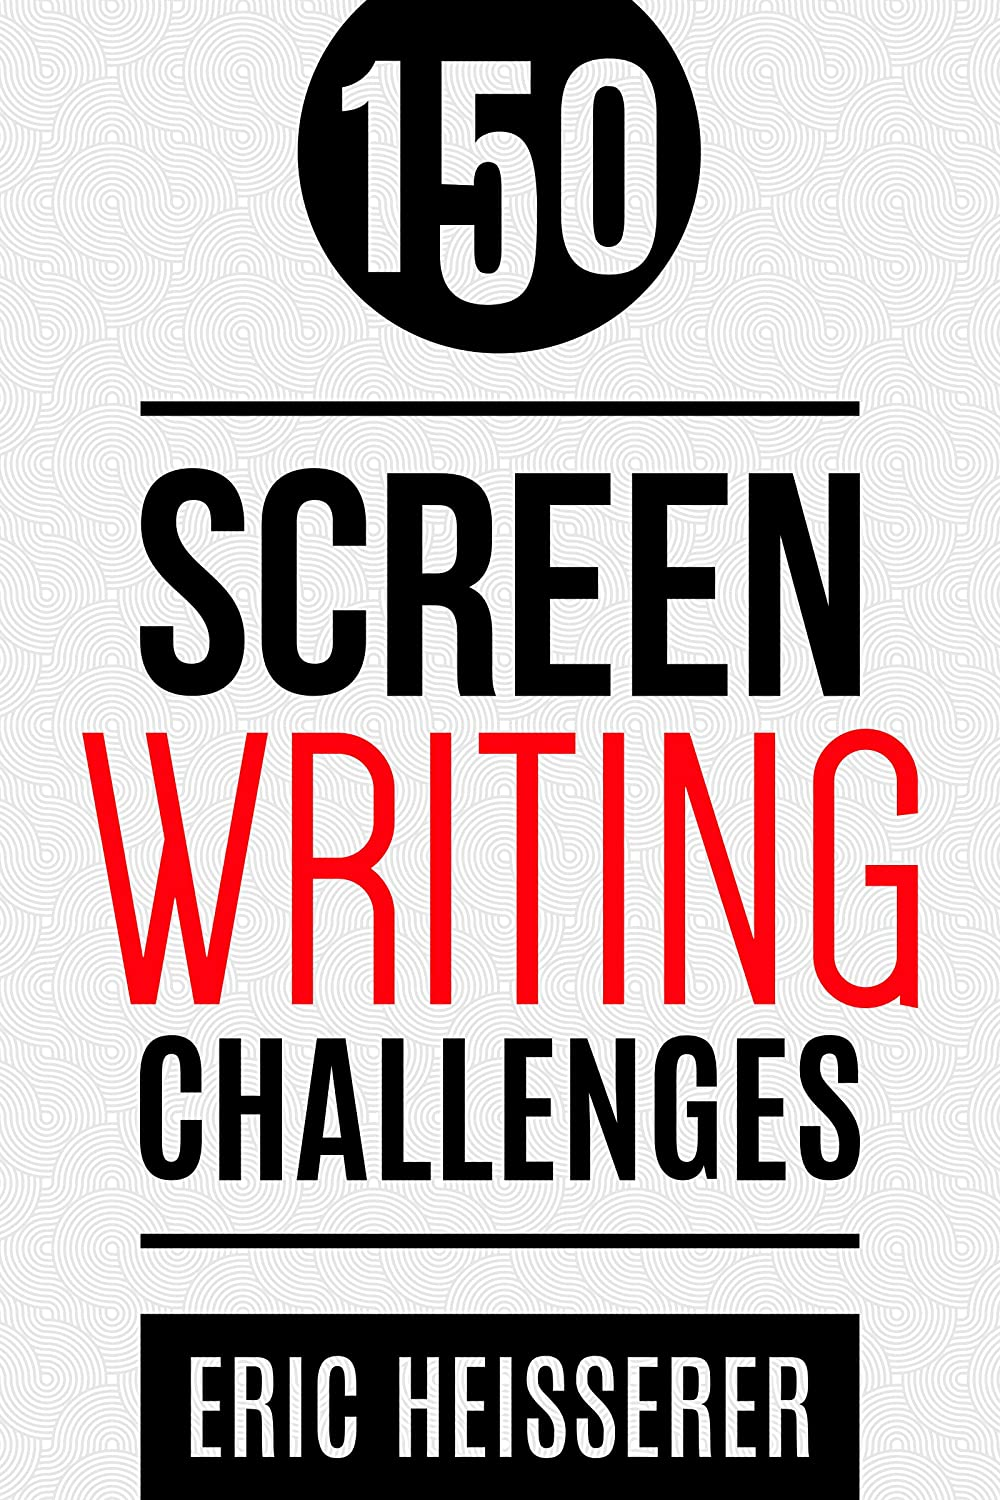 150 Screenwriting Challenges by Eric Heisserer